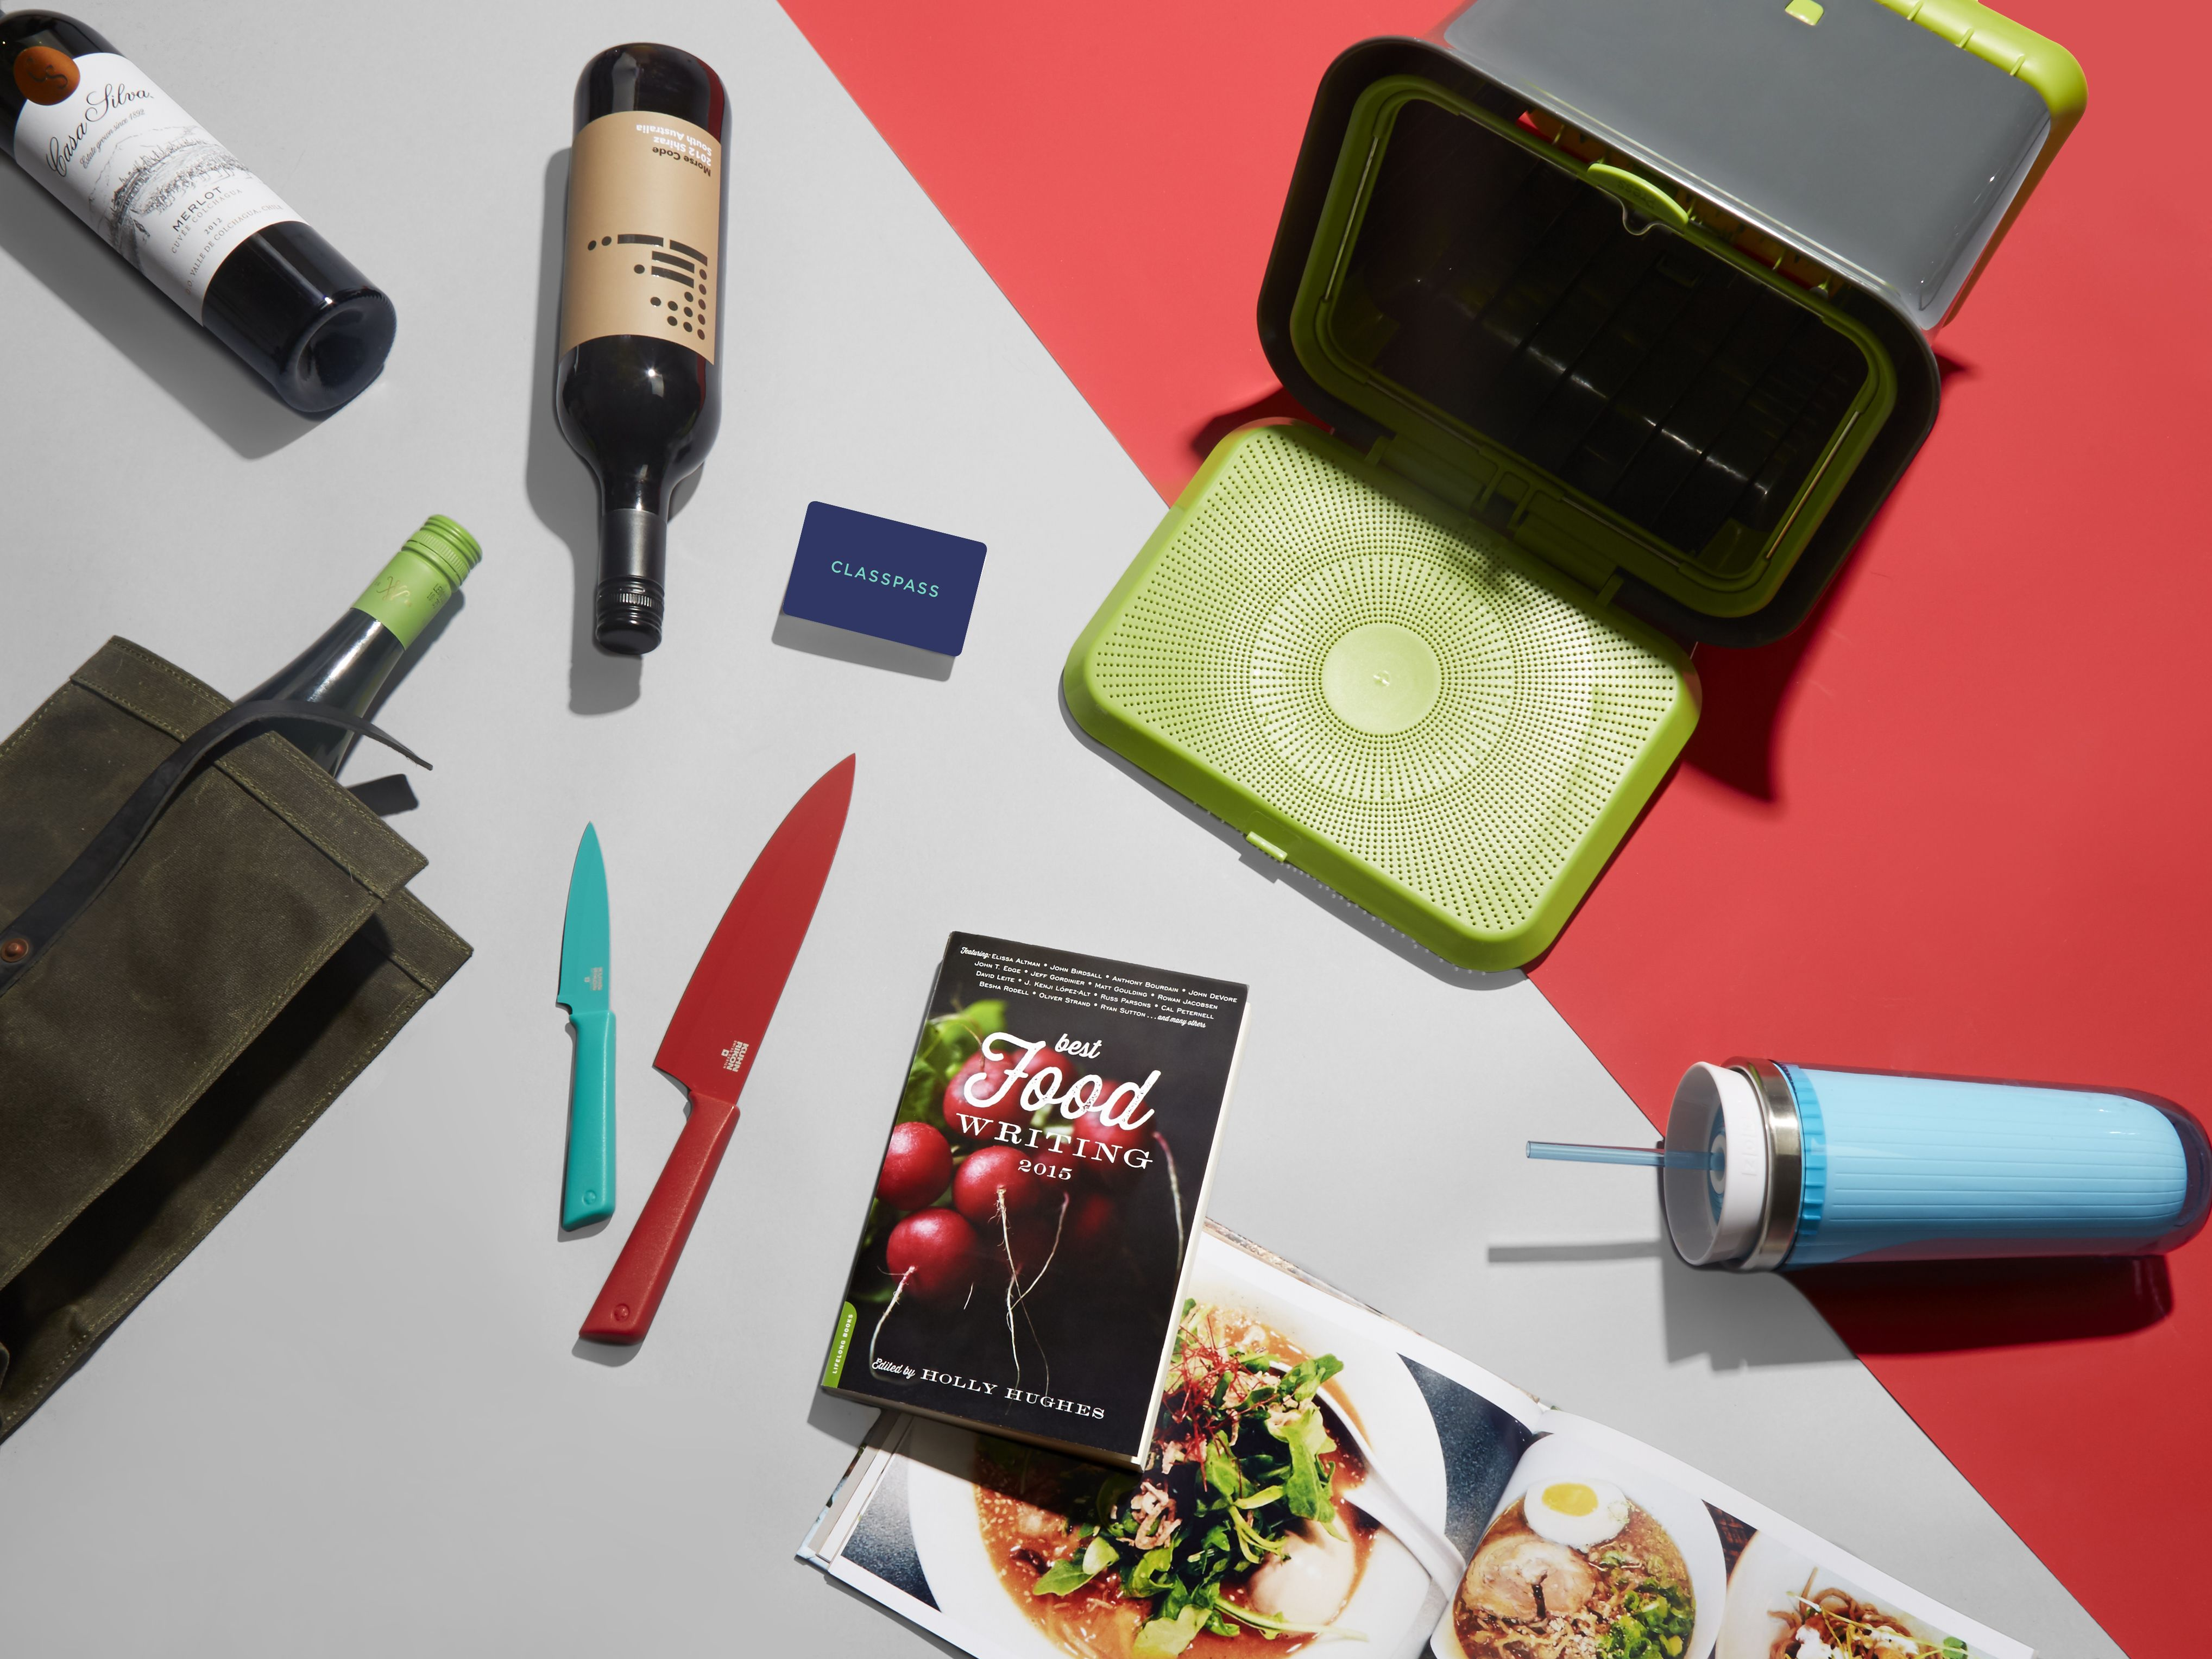 Holiday Giftaway 9 Gifts For The Foodie Classpass Holiday Gifts